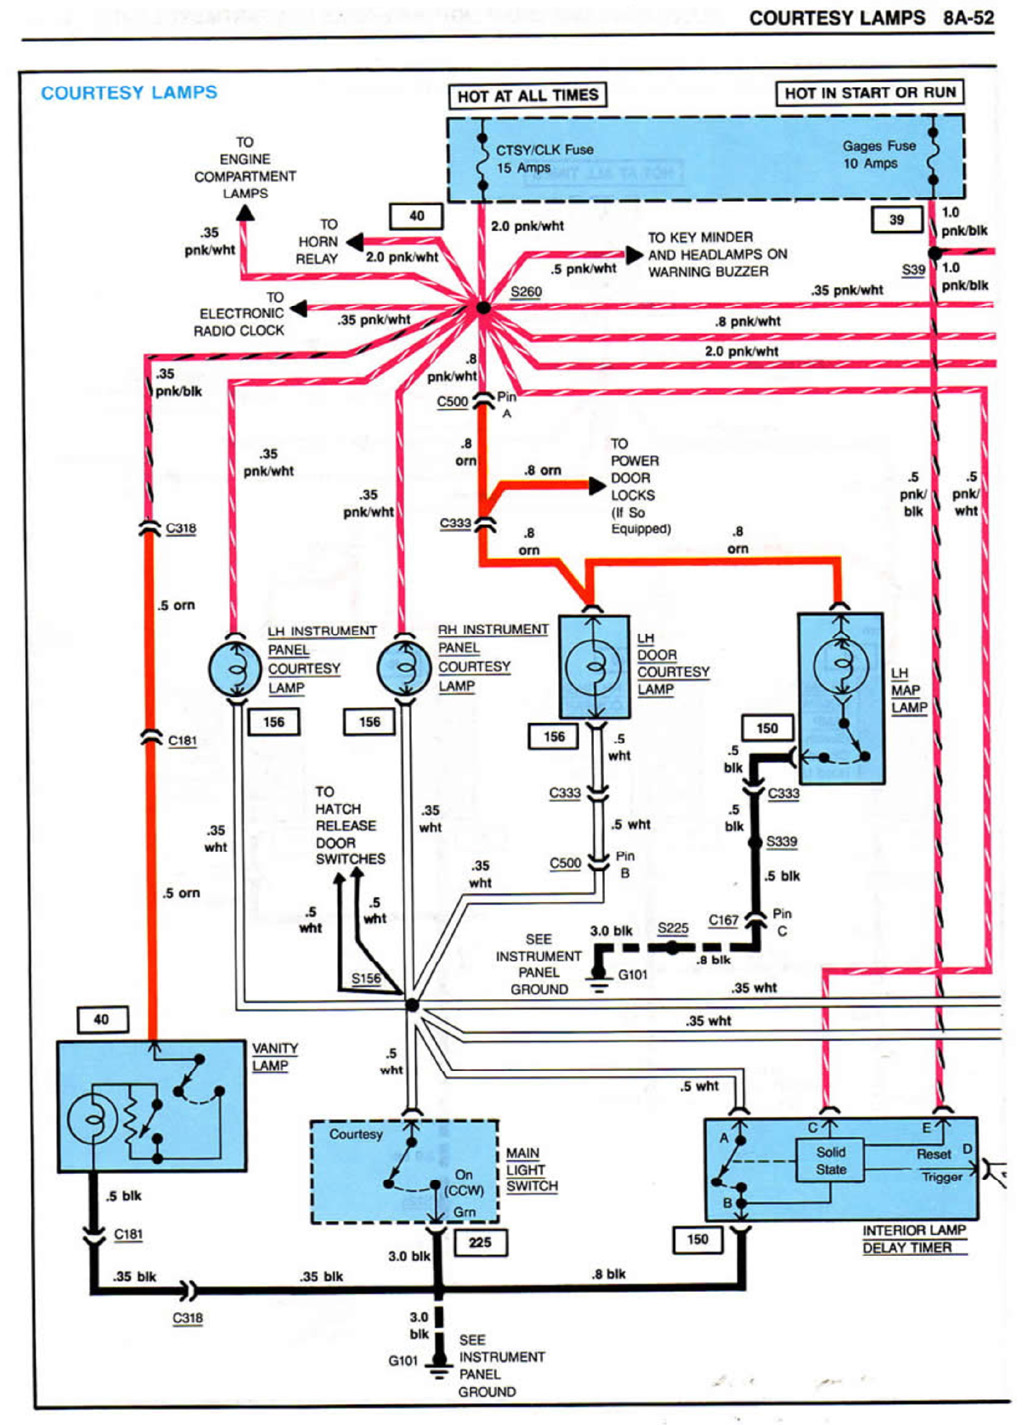 1984_Corvette_Courtesy_Lamps1 c4 corvette wiring diagram c4 corvette wiring diagram for sale  at bakdesigns.co